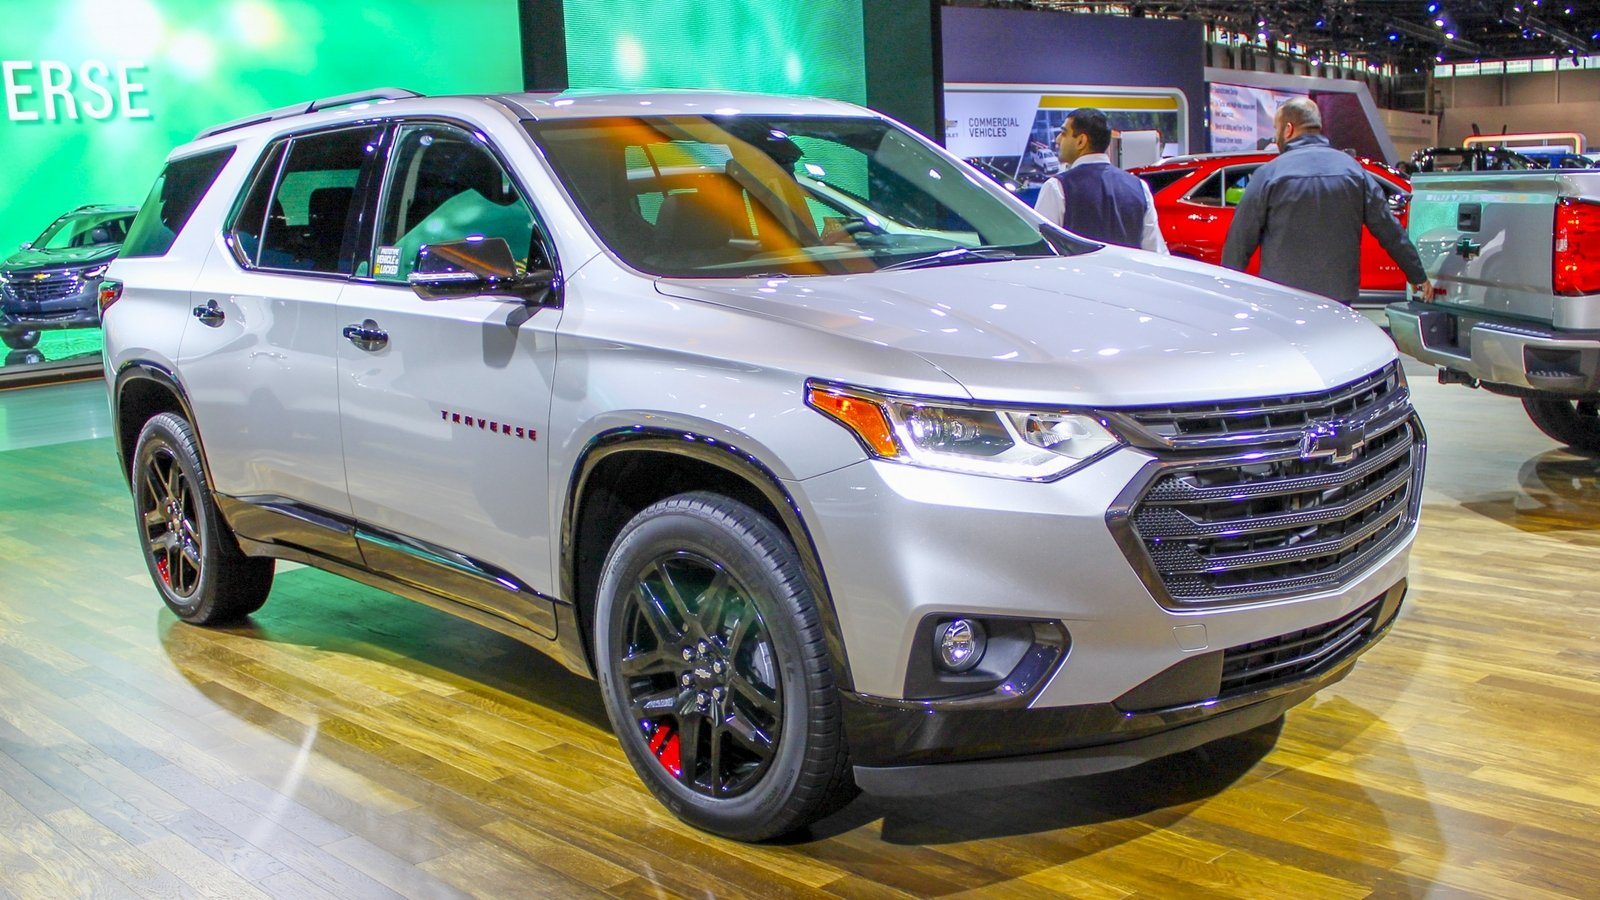 Chevy Equinox Aftermarket Accessories >> 2017 Chevrolet Traverse Redline Edition - Picture 705372 | car review @ Top Speed